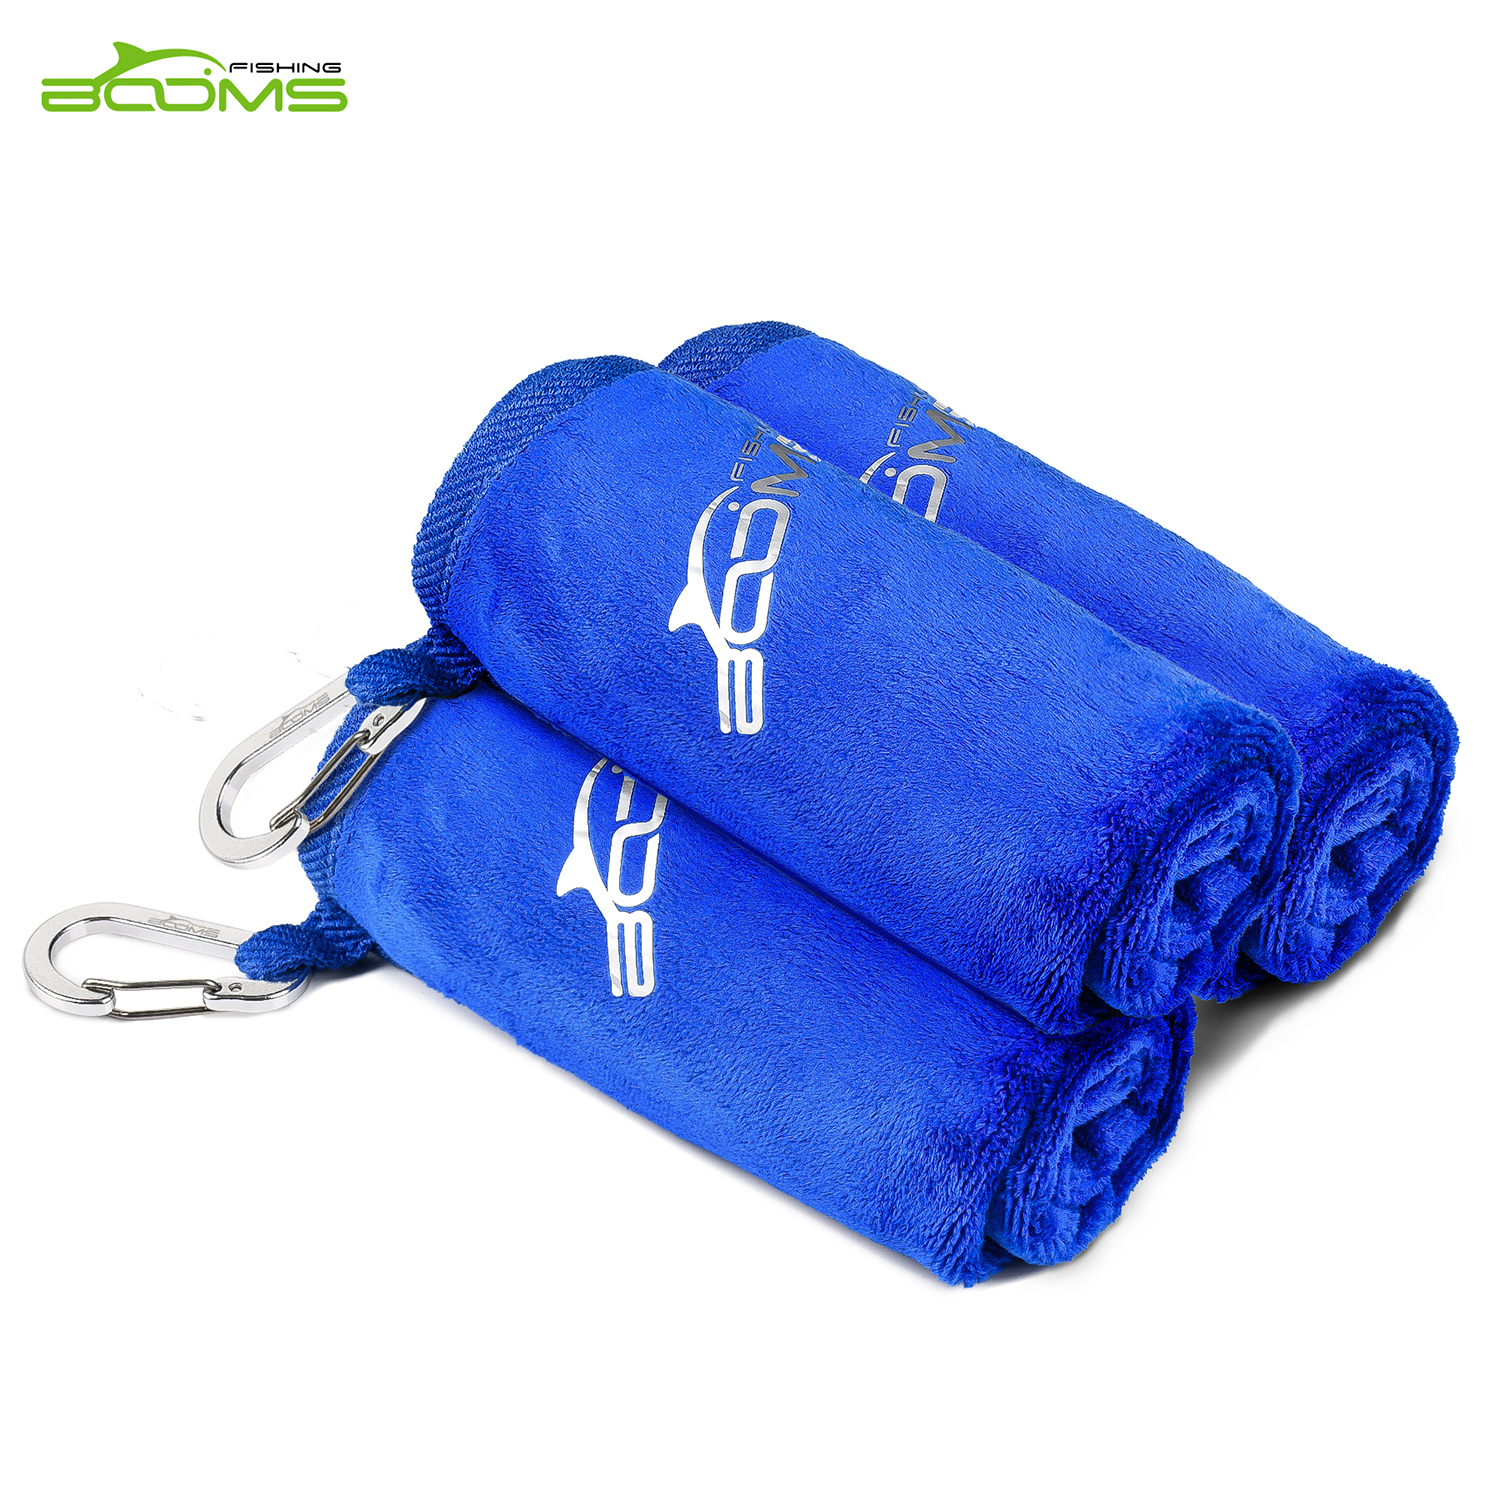 Booms Fishing Microfiber Bait Towel Fishing Towel Blue and Brown Two Color AvailiableBooms Fishing Microfiber Bait Towel Fishing Towel Blue and Brown Two Color Availiable